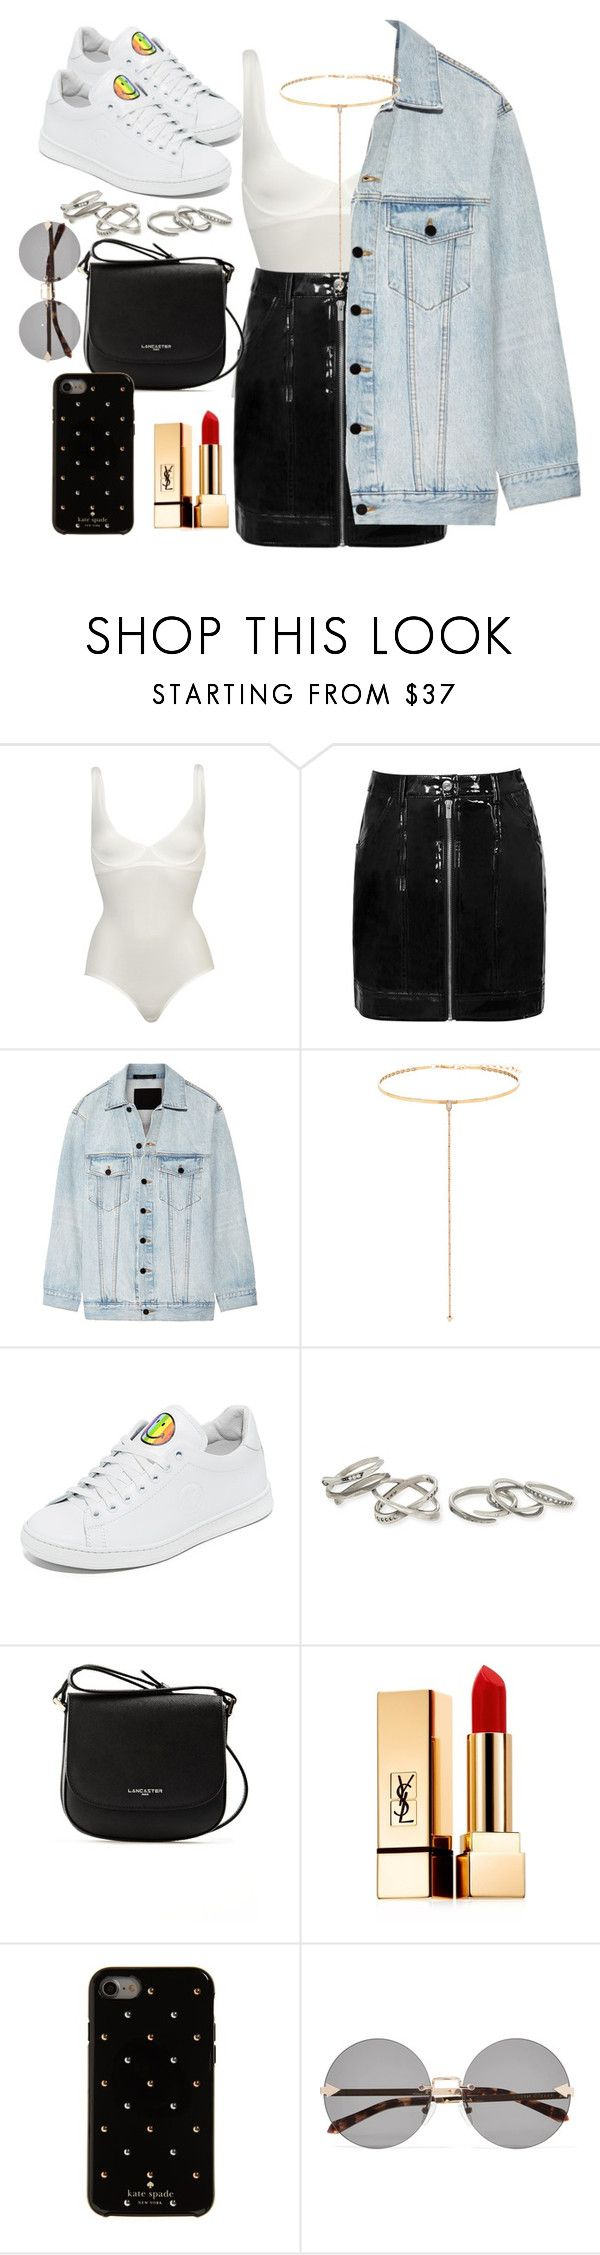 """Untitled #24"" by triciabae2055 on Polyvore featuring Wolford, Alexander Wang, Shay, Joshua's, Kendra Scott, Lancaster, Yves Saint Laurent, Kate Spade and Karen Walker"